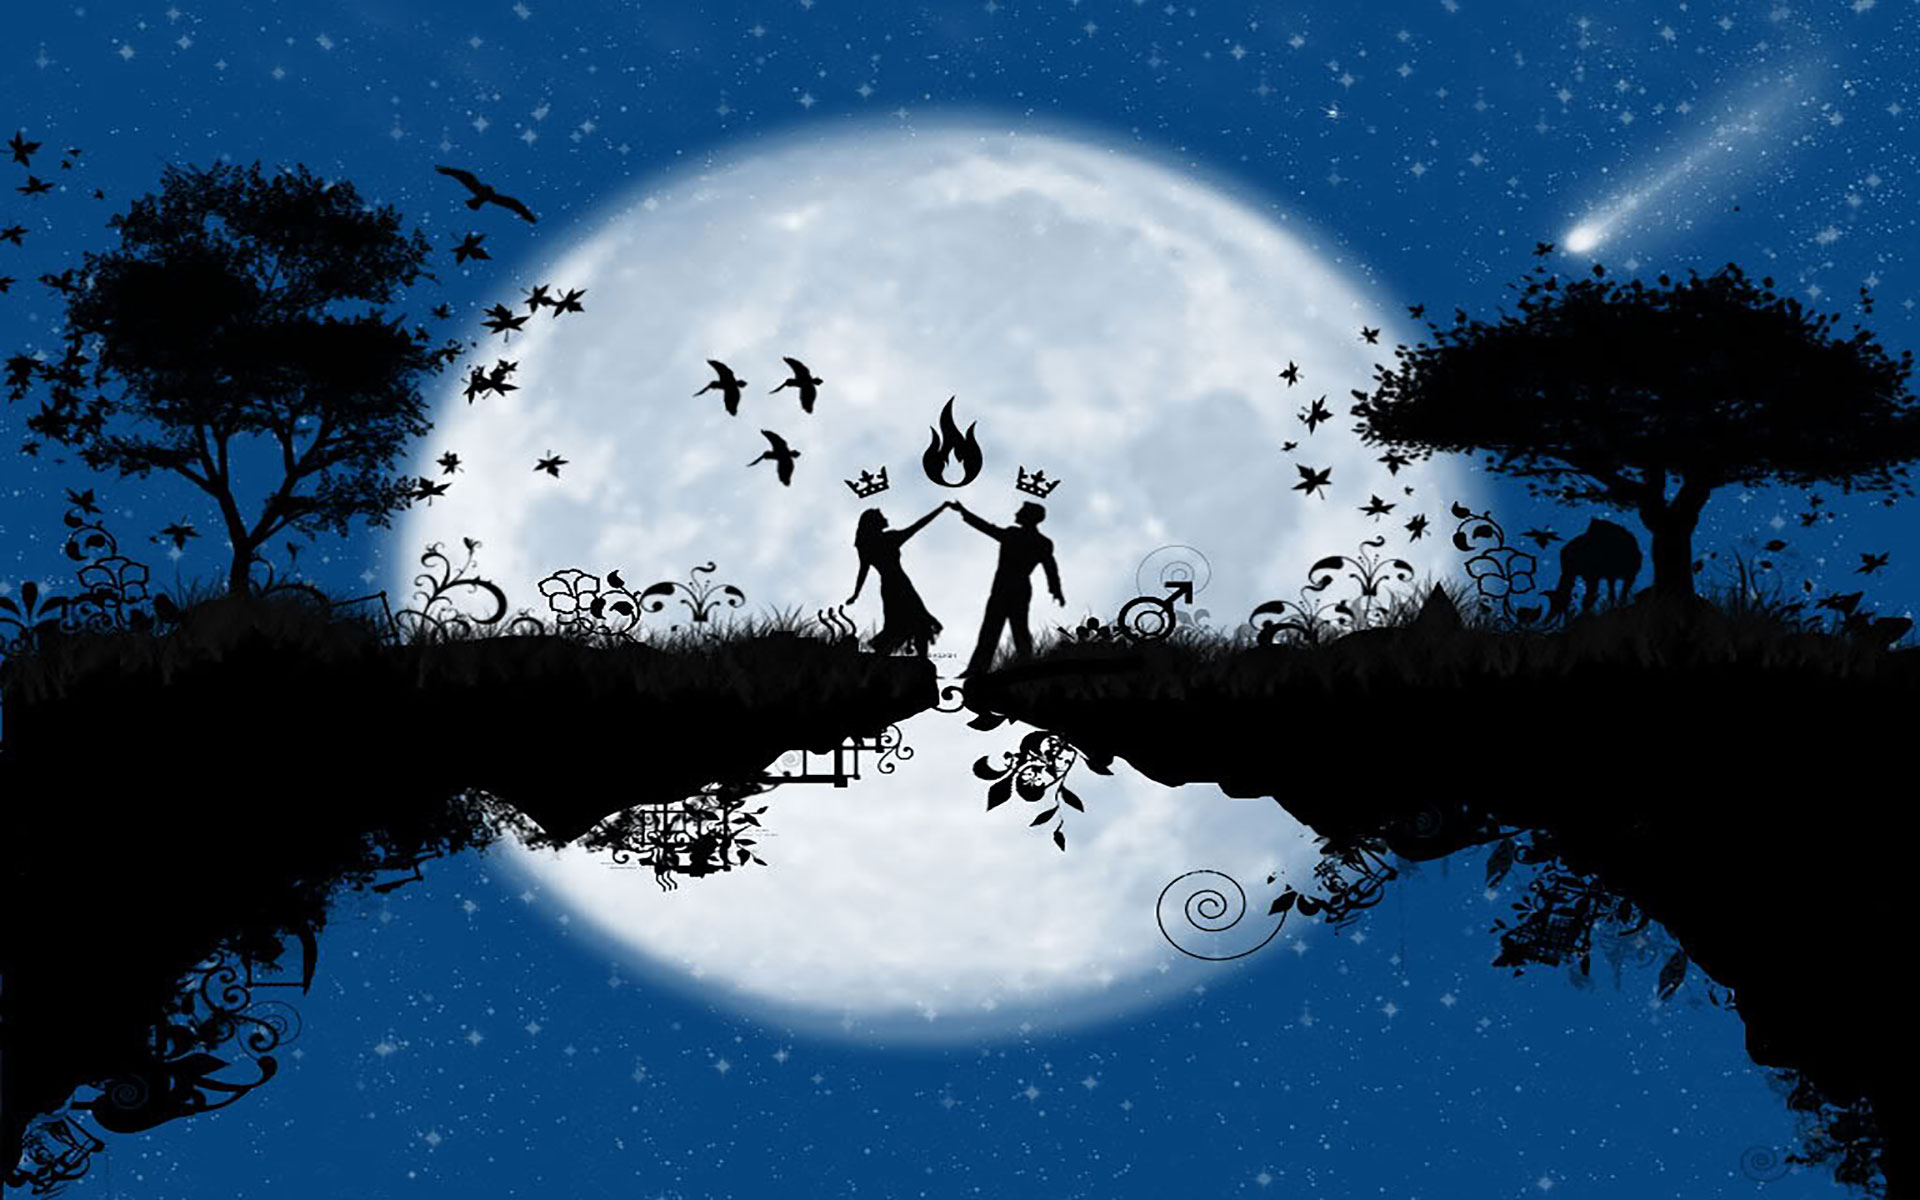 Wallpaper 1440x1280 Px Abstract Love Nature: Silhouette Of Couple Holding Hands -Dancing Couple Silhouette